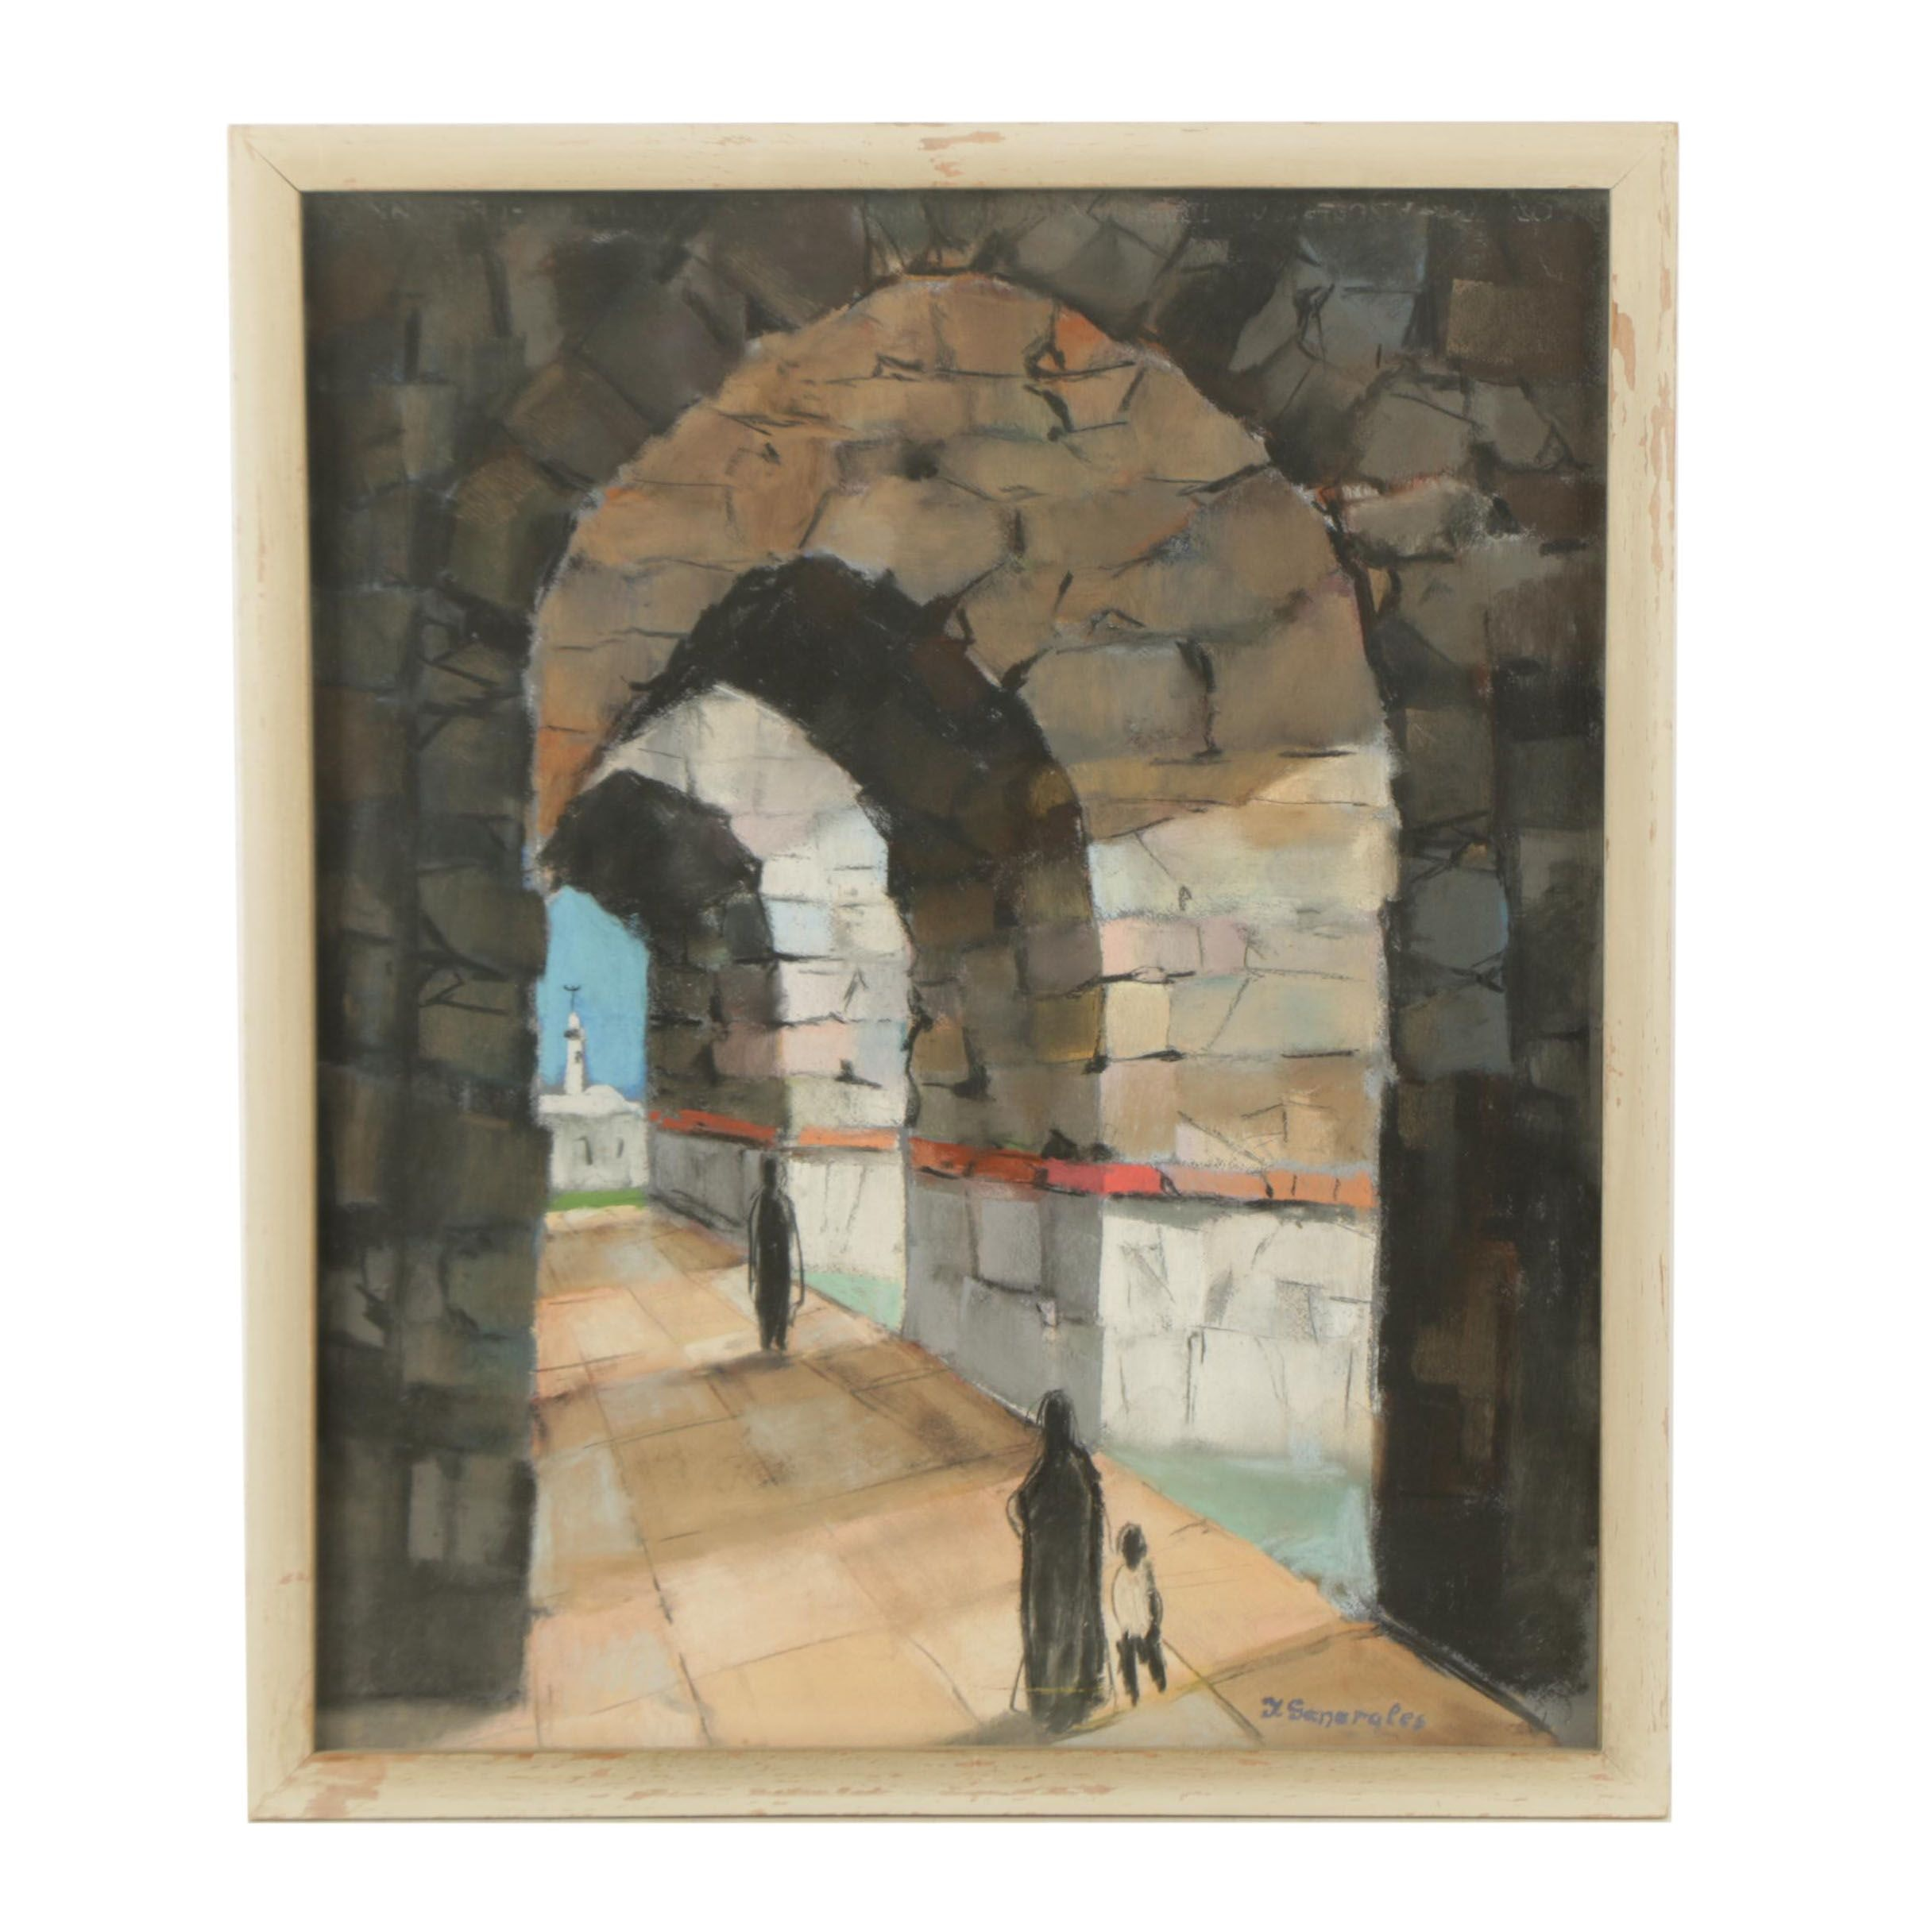 J. Generales Pastel Drawing on Paper of Figures in Arched Passageway